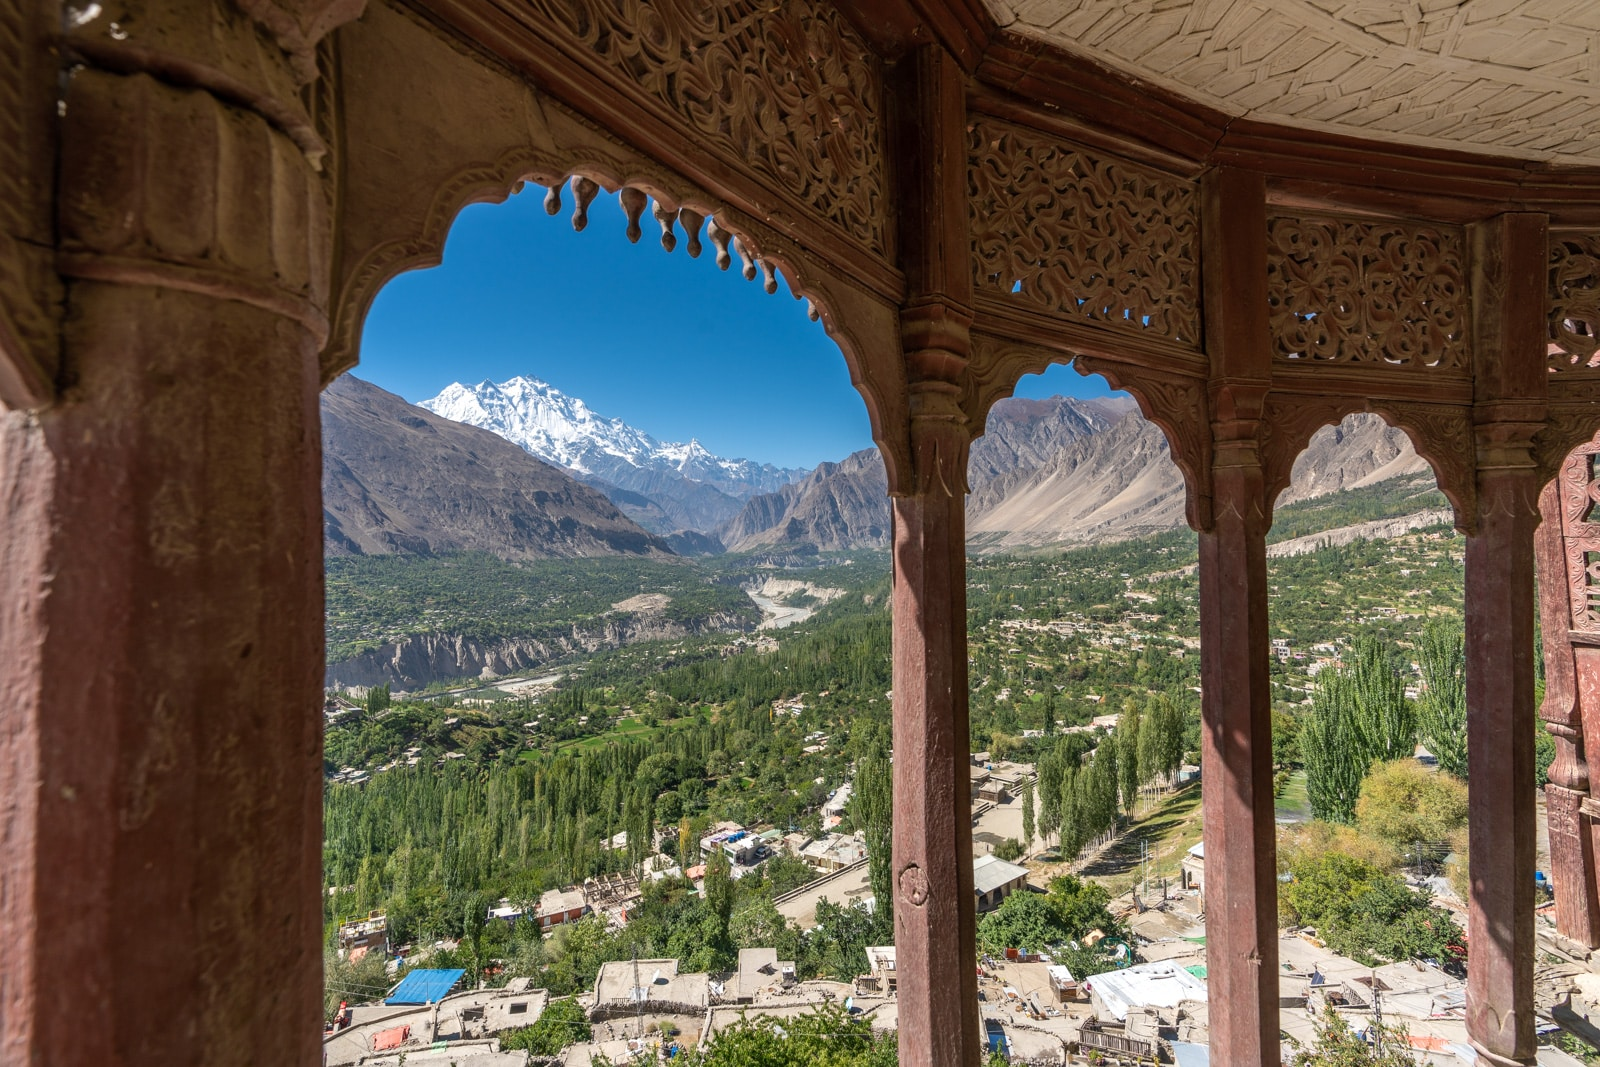 View of Karimabad from Baltit Fort in Hunza, Pakistan